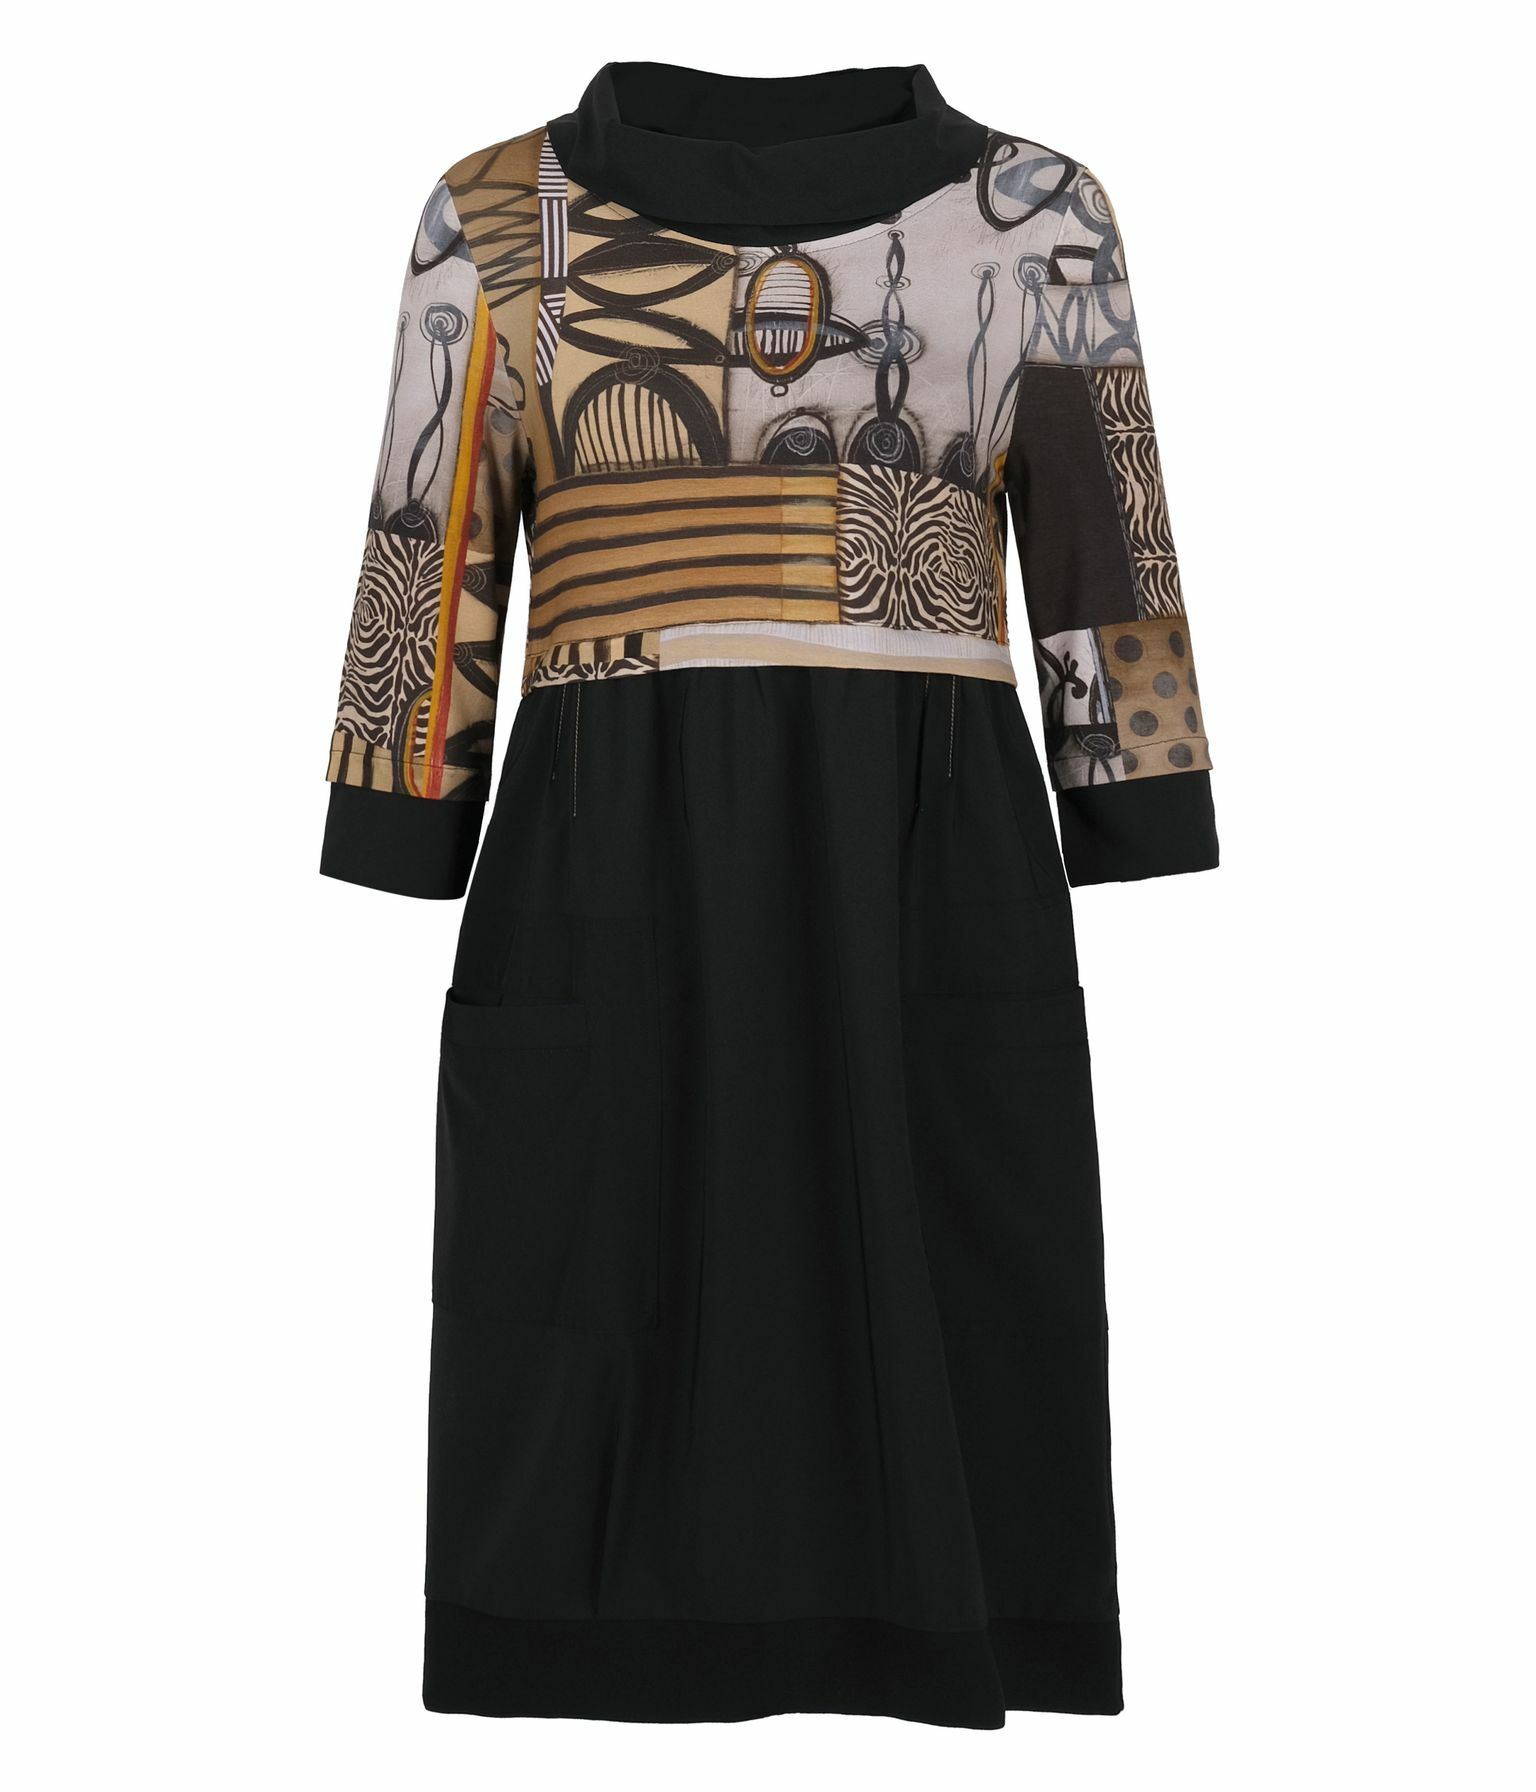 Simply Art Dolcezza: Black Butterfly Poetic Metaphor High Waisted Art Dress